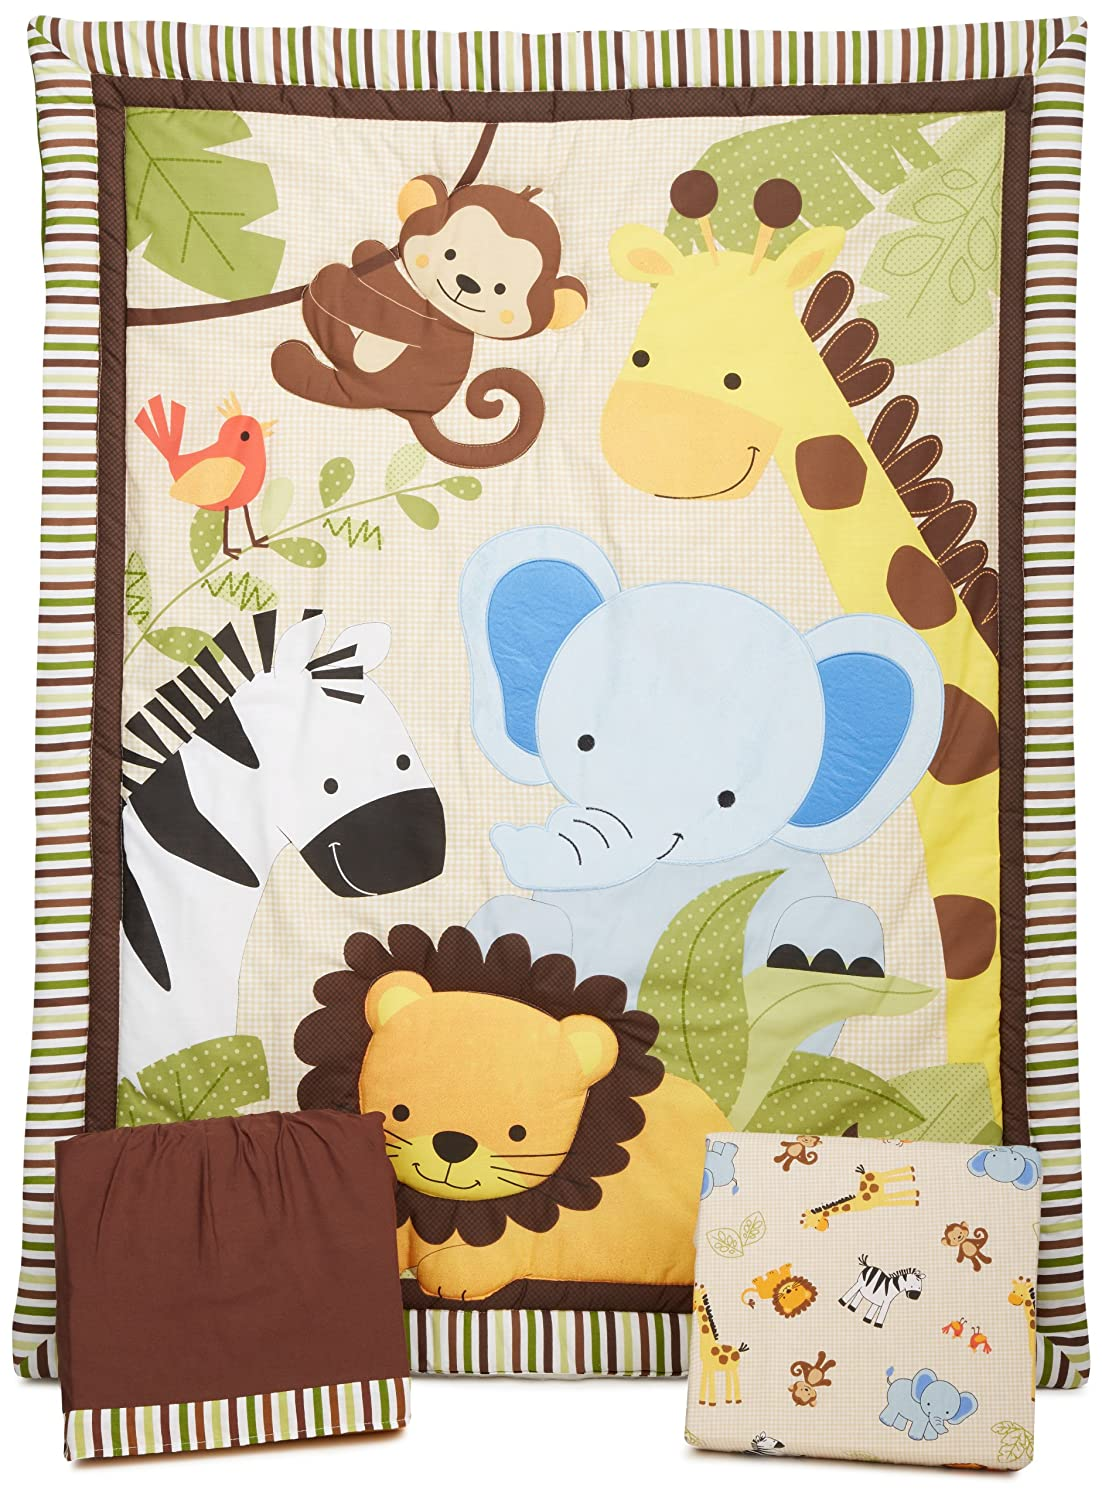 Bedtime Originals Jungle Buddies 3 Piece Crib Bedding Set, Brown/Yellow 218003V